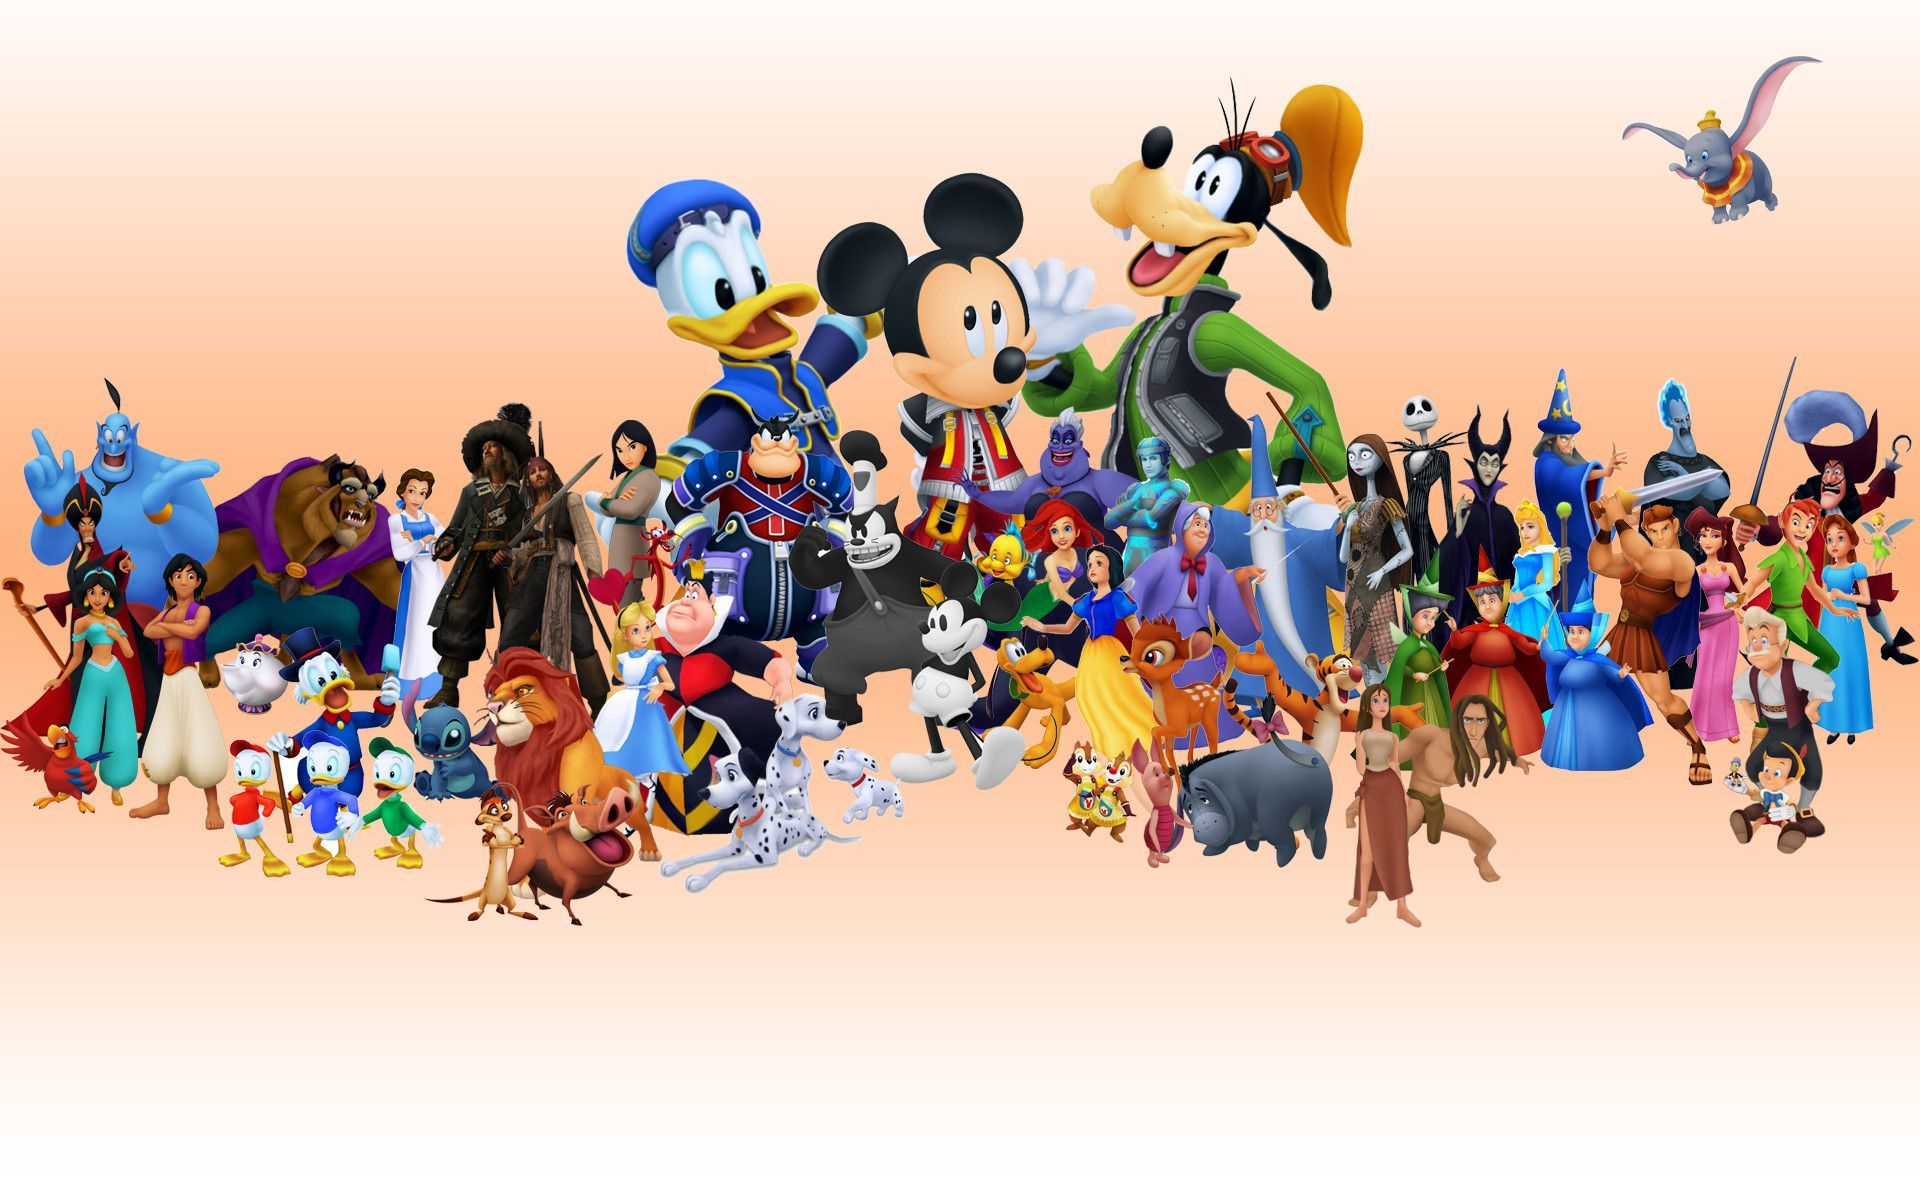 Wallpaper Wiki Disney Wallpaper Tumblr Desktop Pic Wpb009437